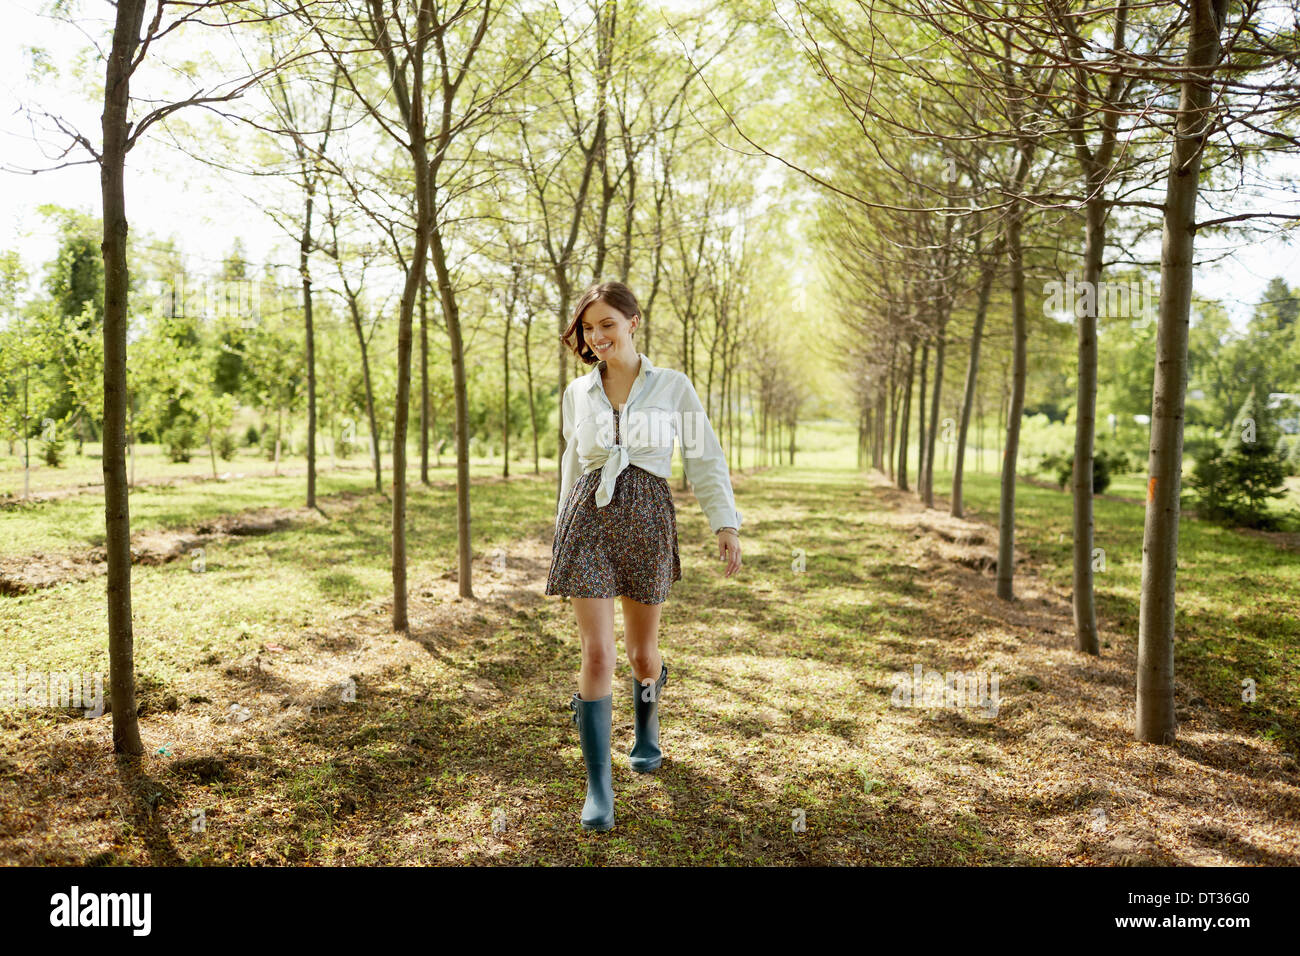 A young woman walking down an avenue of trees in woodland Stock Photo